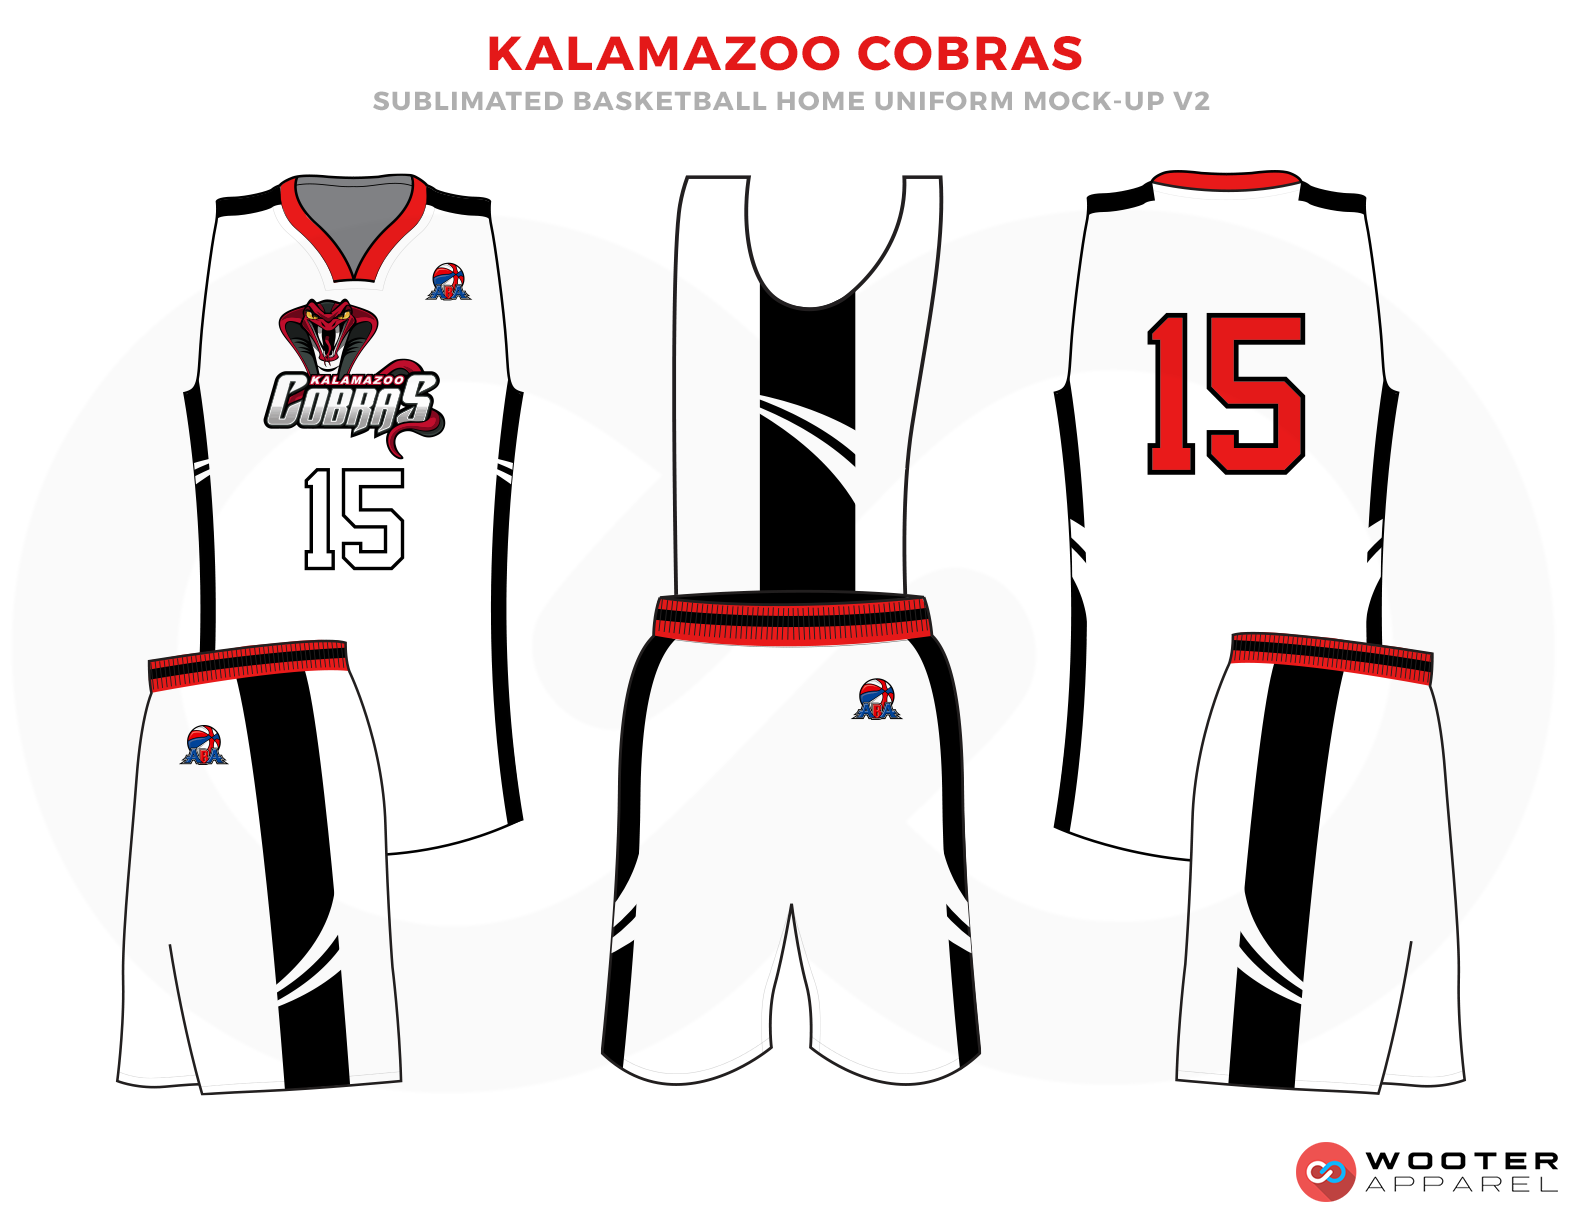 KALAMAZOO COBRAS White Red and Black Basketball Uniforms, Jersey and Shorts